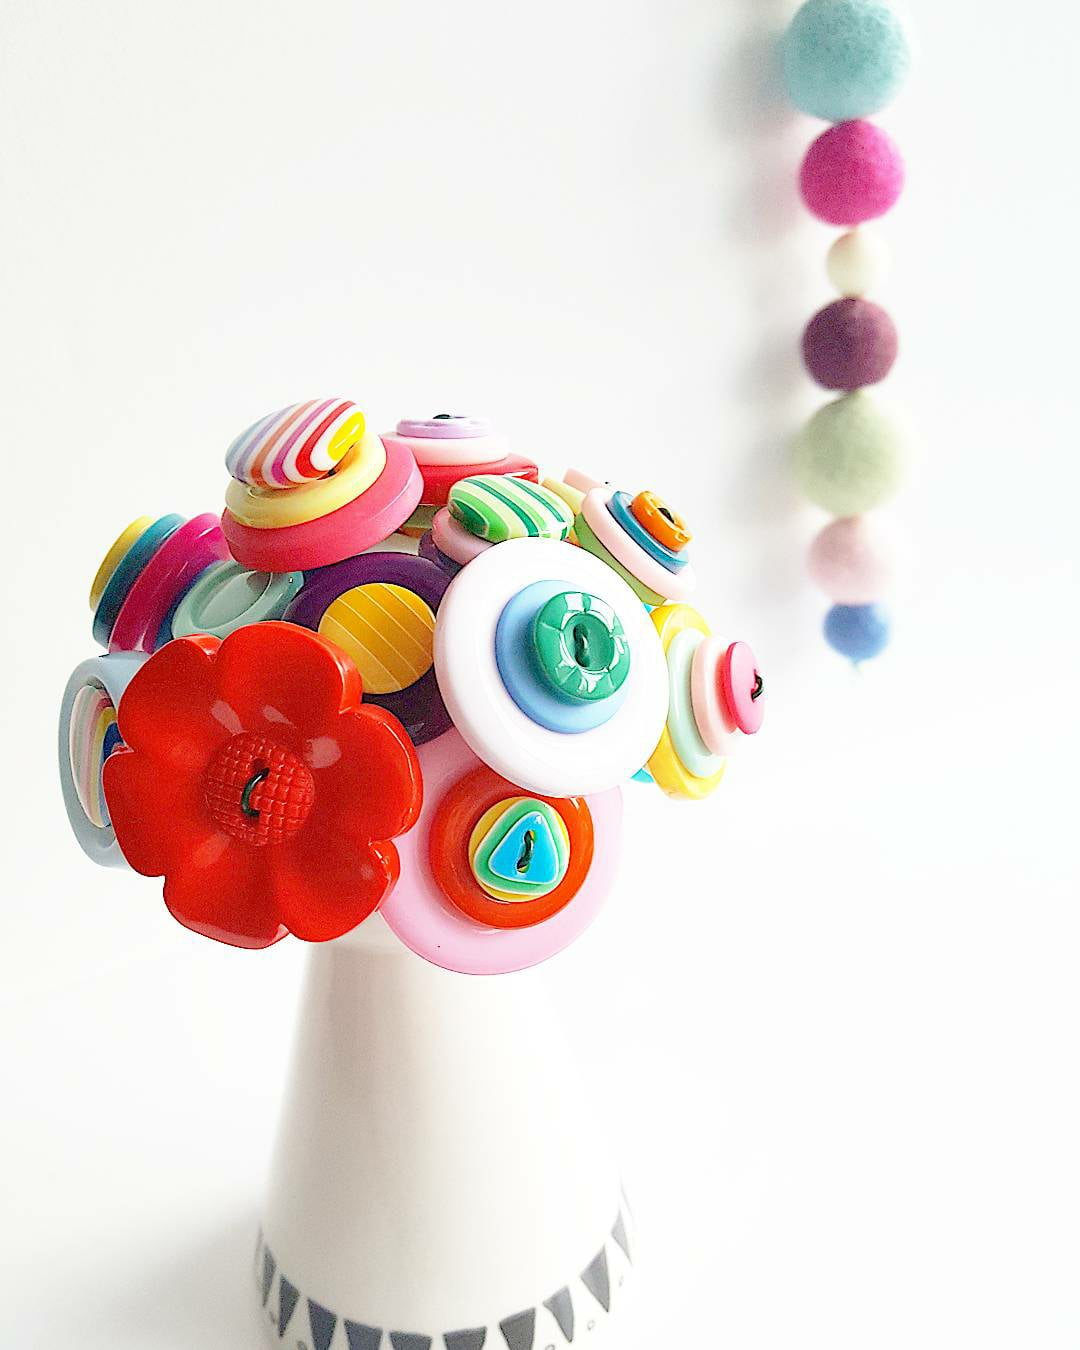 one-of-a-kind decors made of colorful buttons